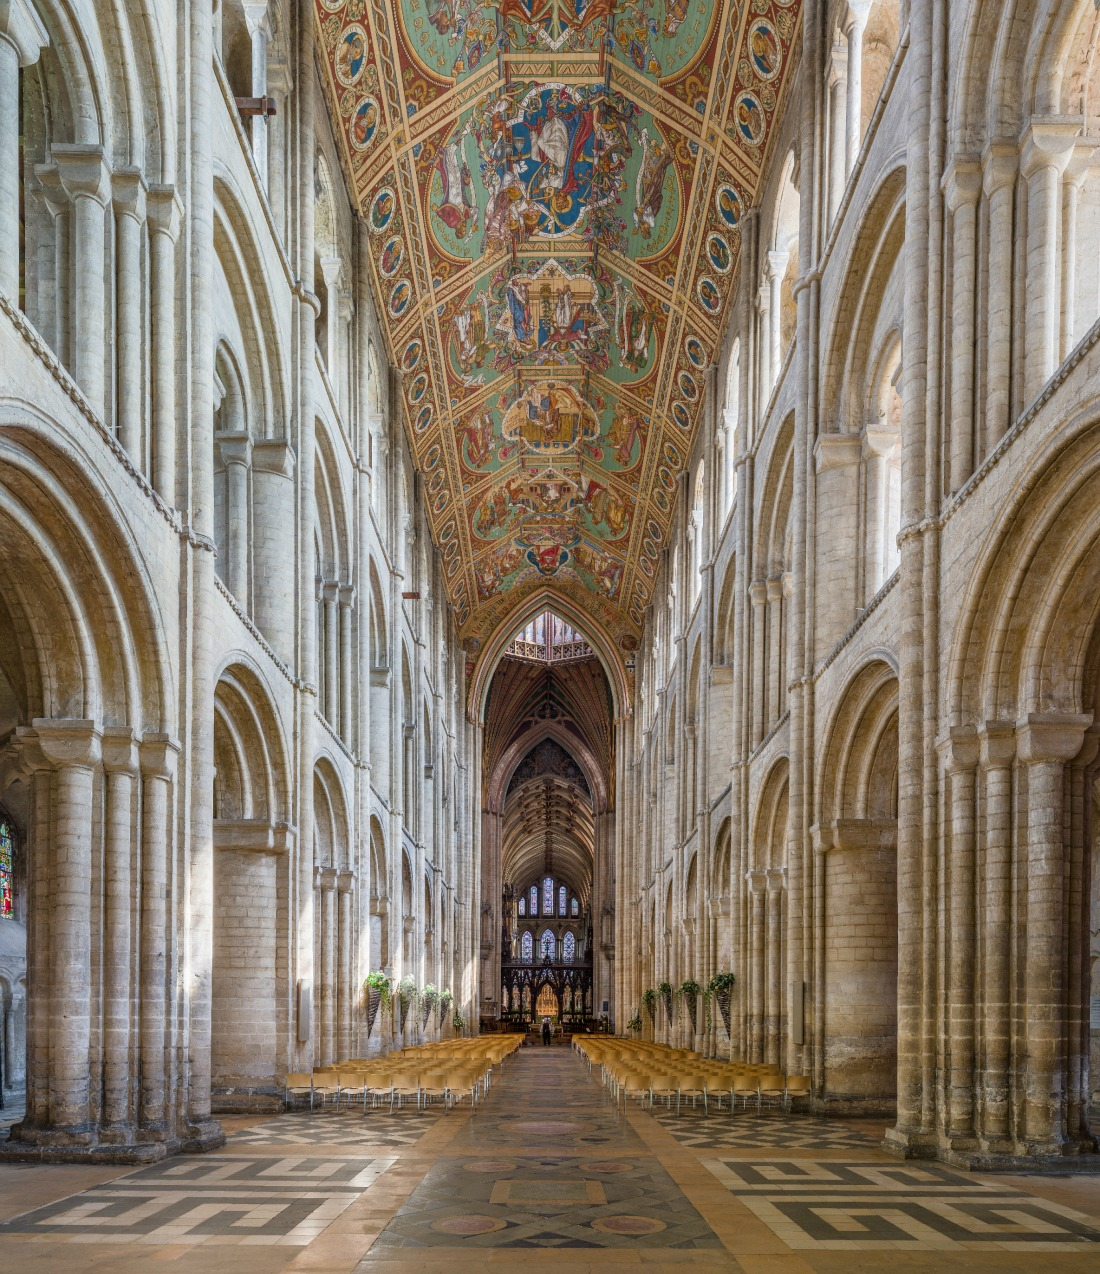 The nave of Ely Cathedral, Cambridgeshire. Credit: David Iliff